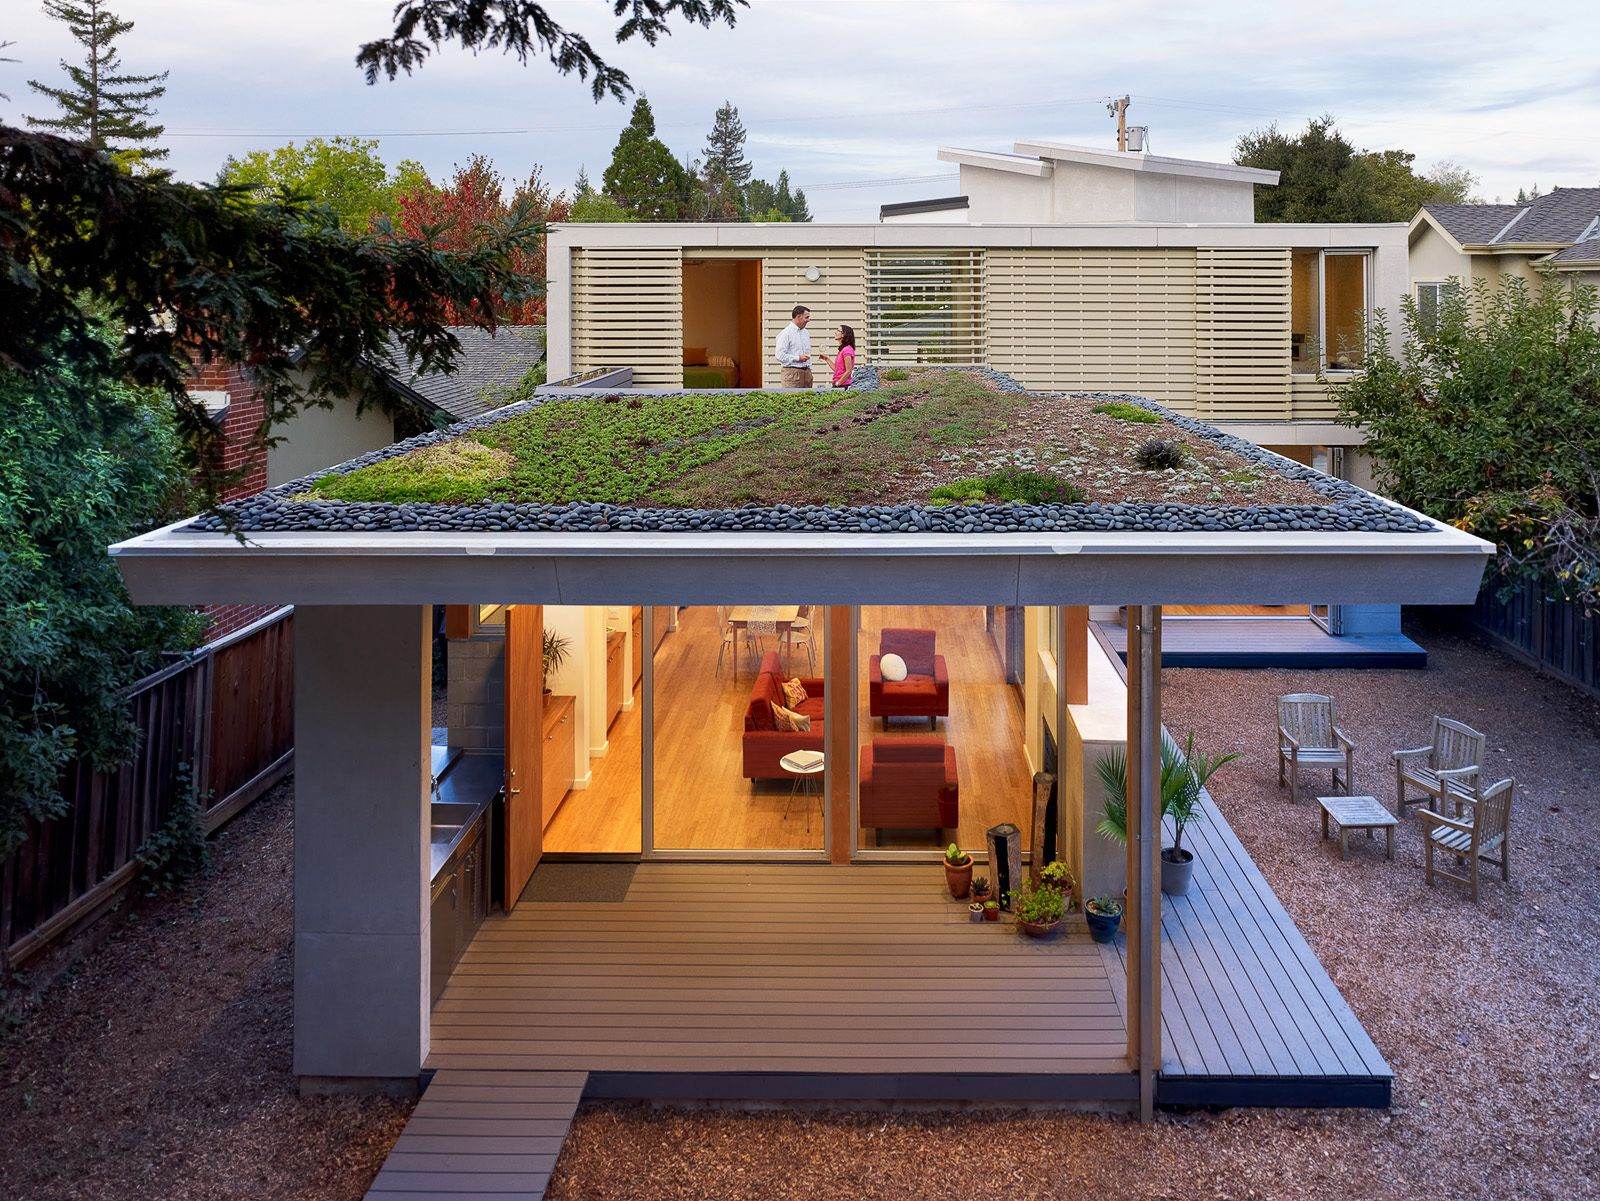 Best Dwell These 10 Green Roofs Bring Life—And So Much More 400 x 300